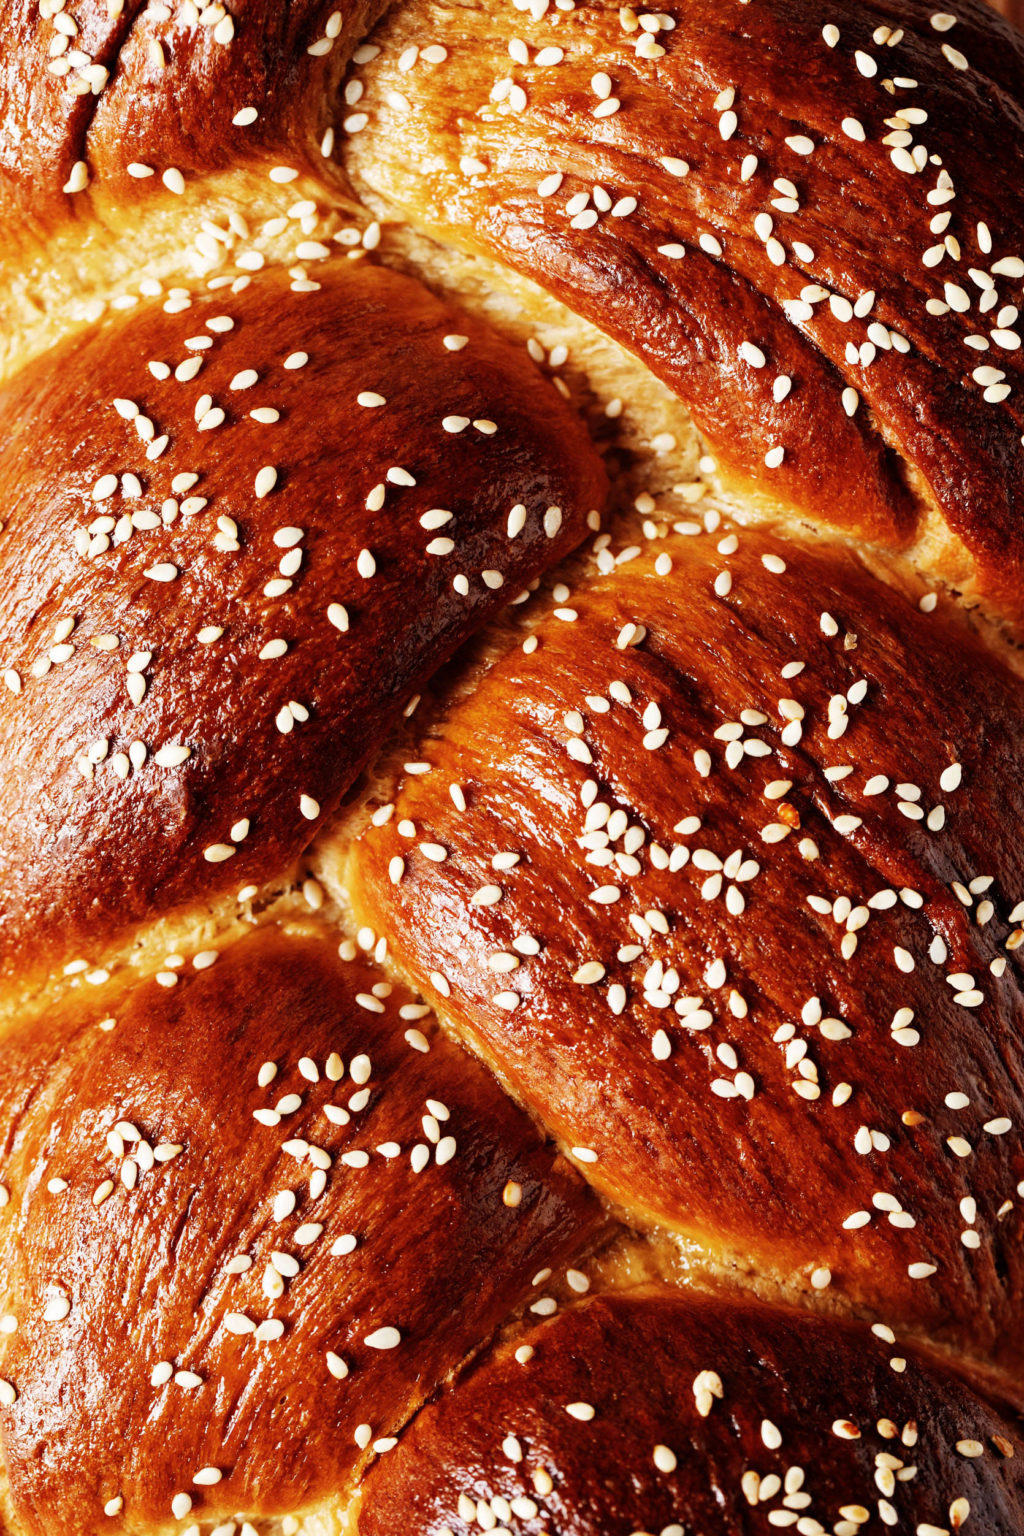 A close up, overhead image of a deep brown, baked and braided loaf of bread. It has been topped with sesame seeds.